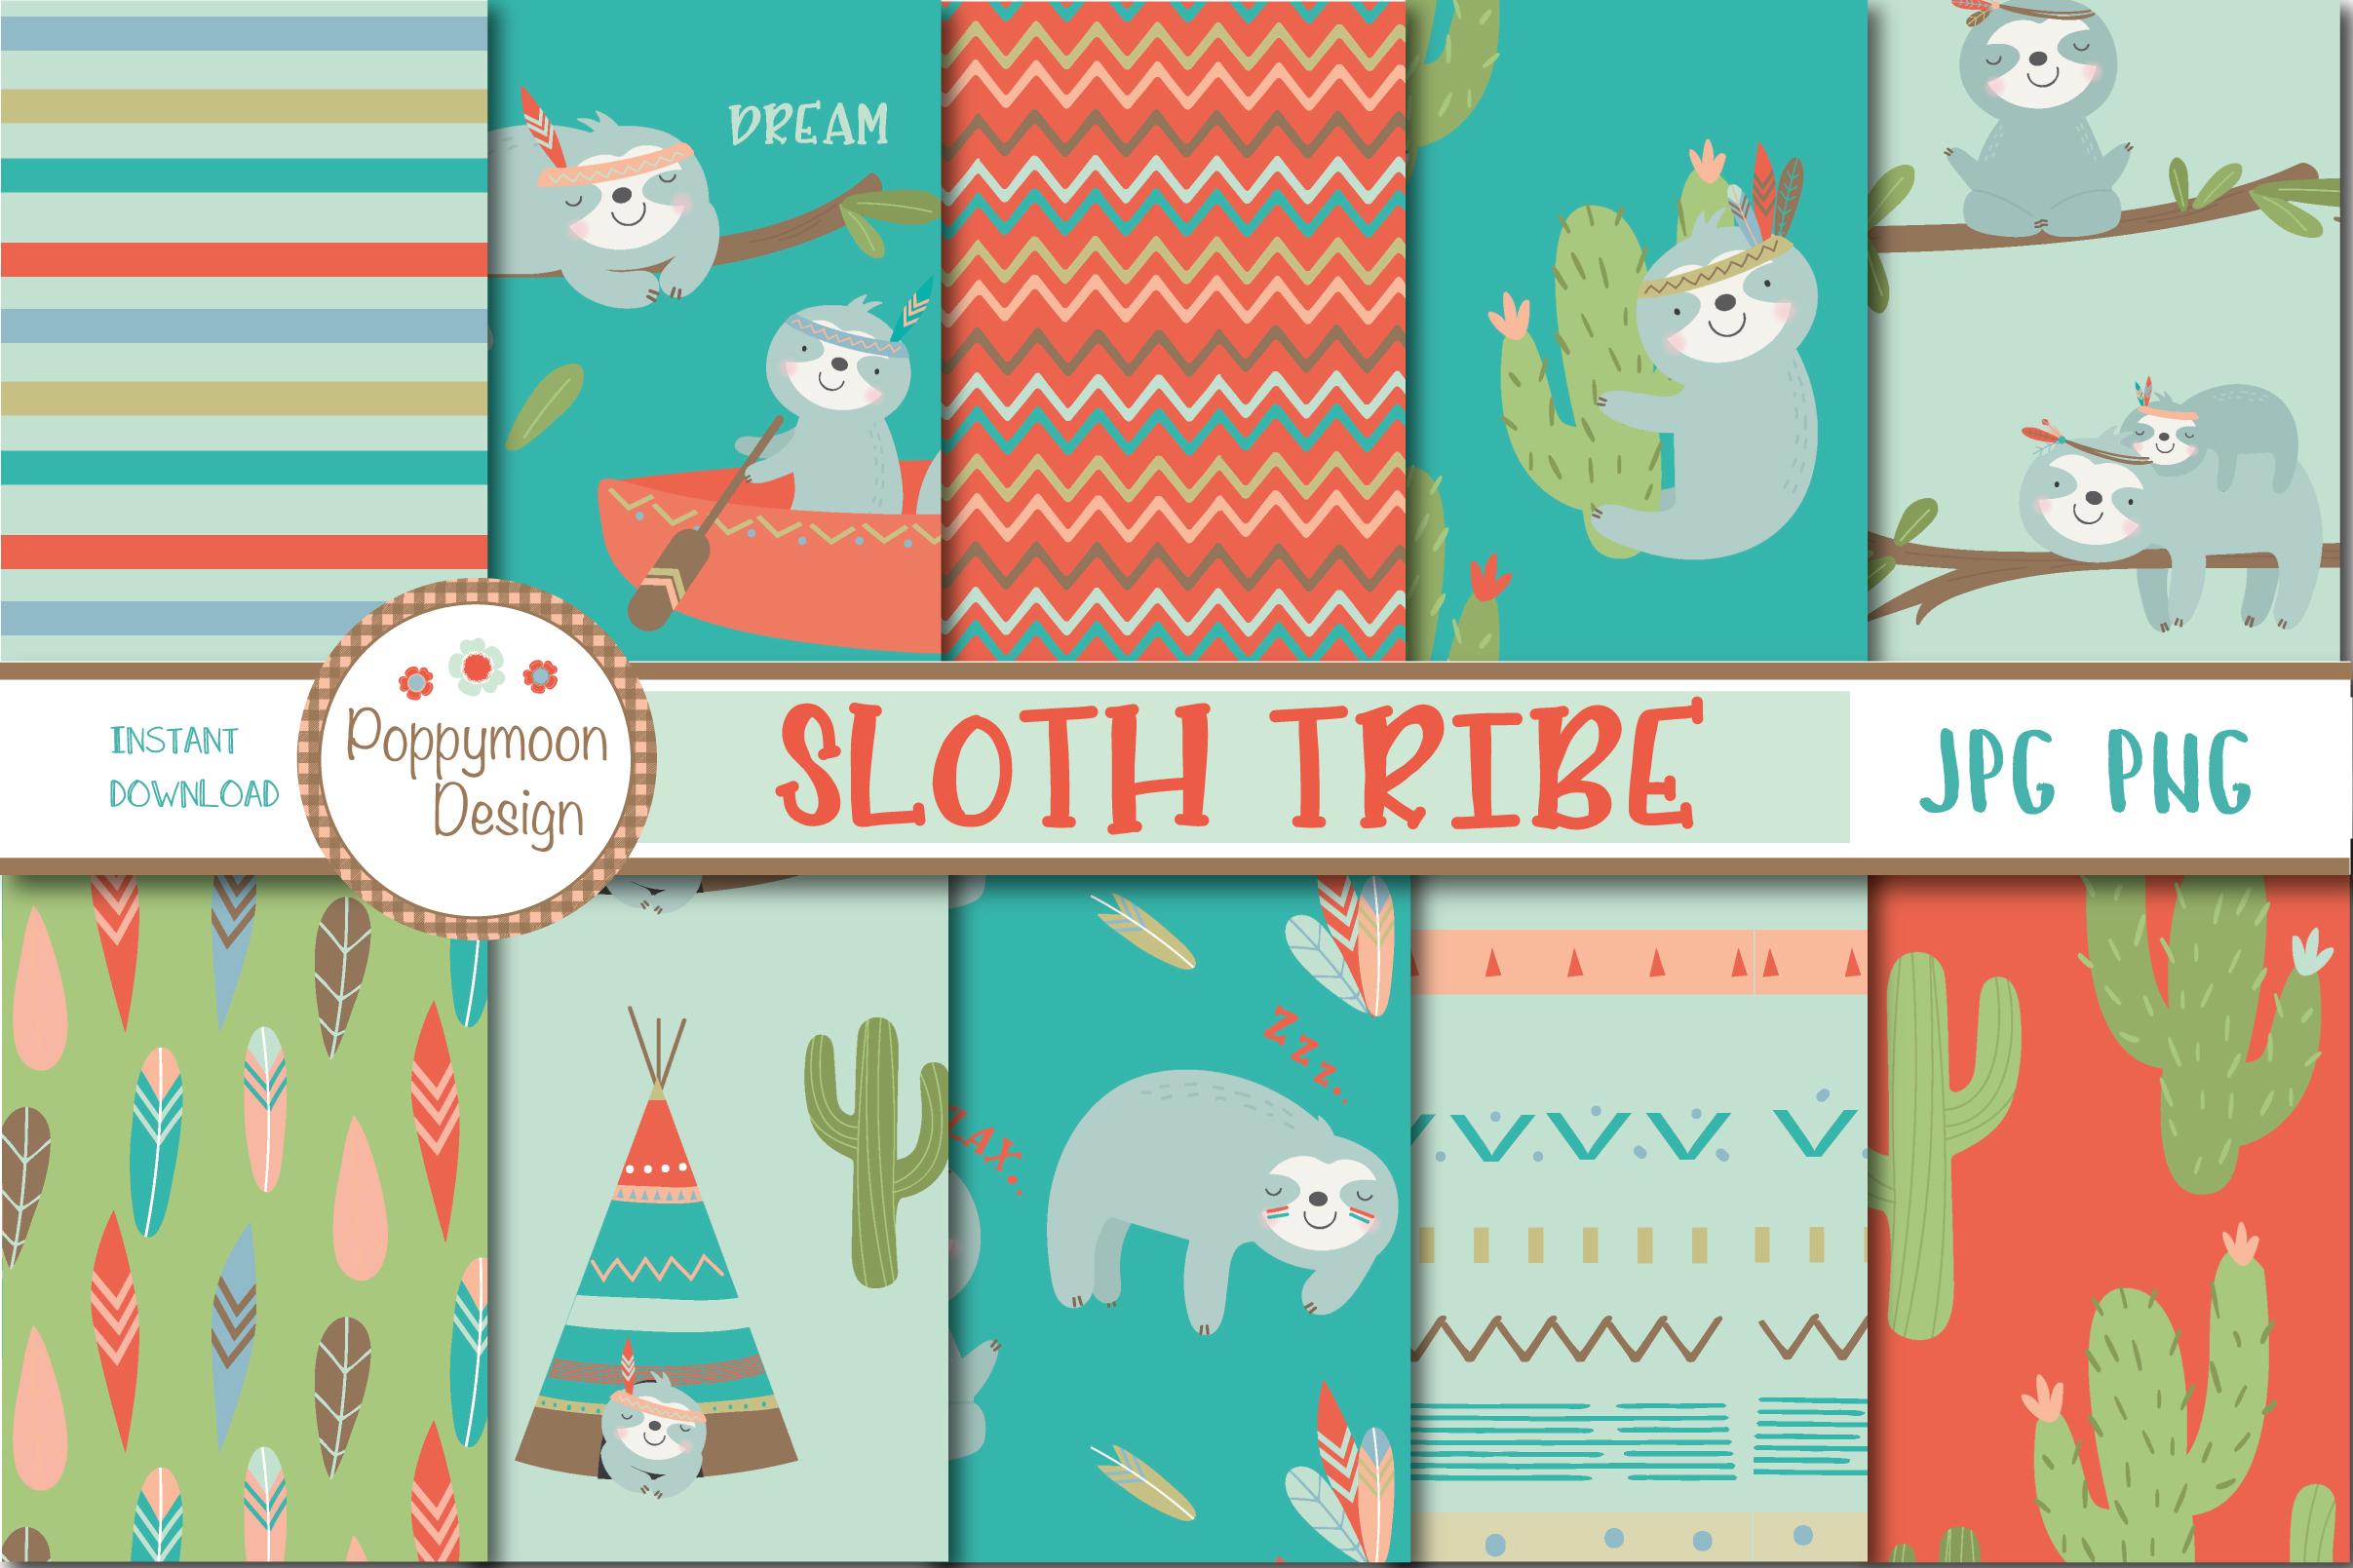 SLoth TRibe clipart and paper set example image 3